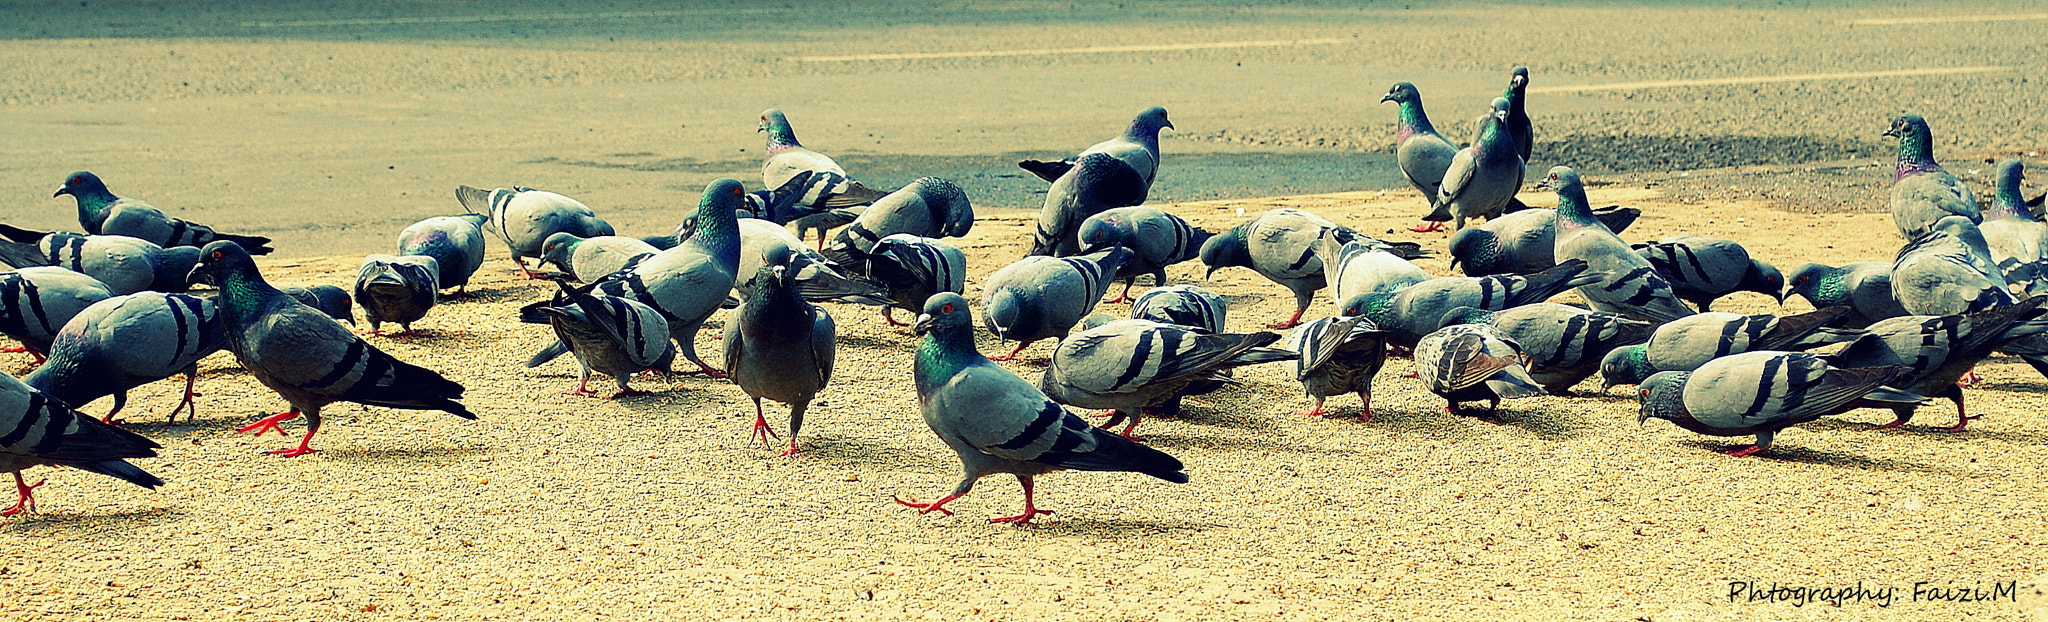 Photograph Pigeons by Faizan Mubasher on 500px